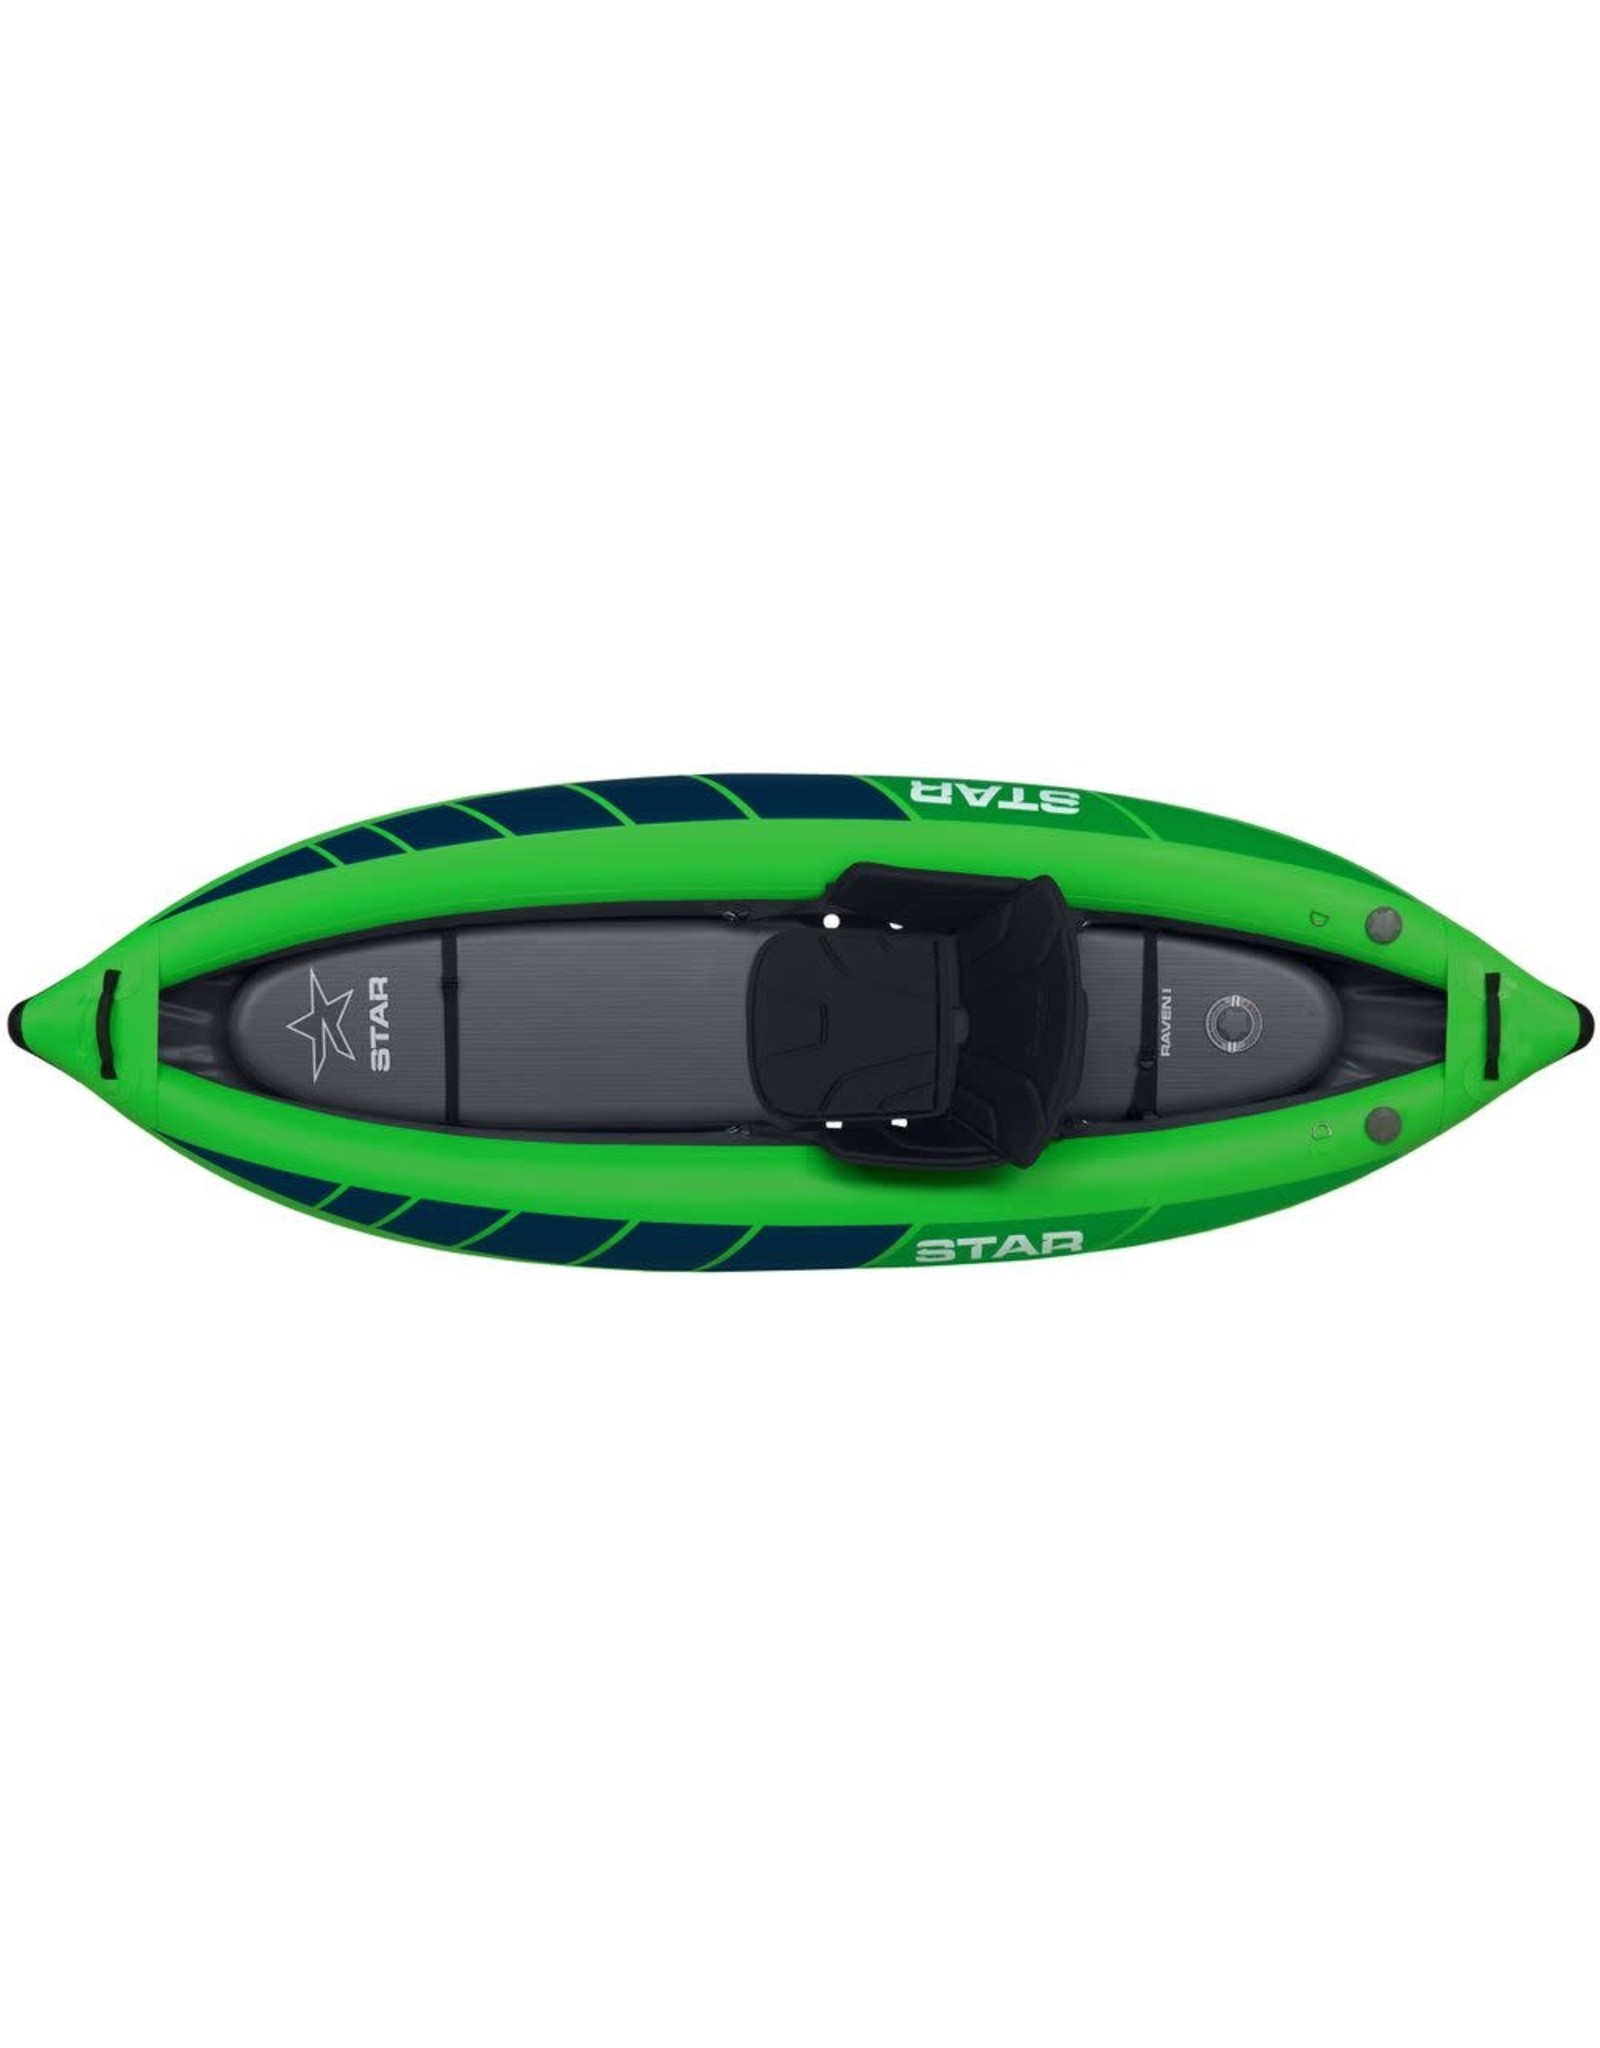 Star STAR Raven I Inflatable Kayak